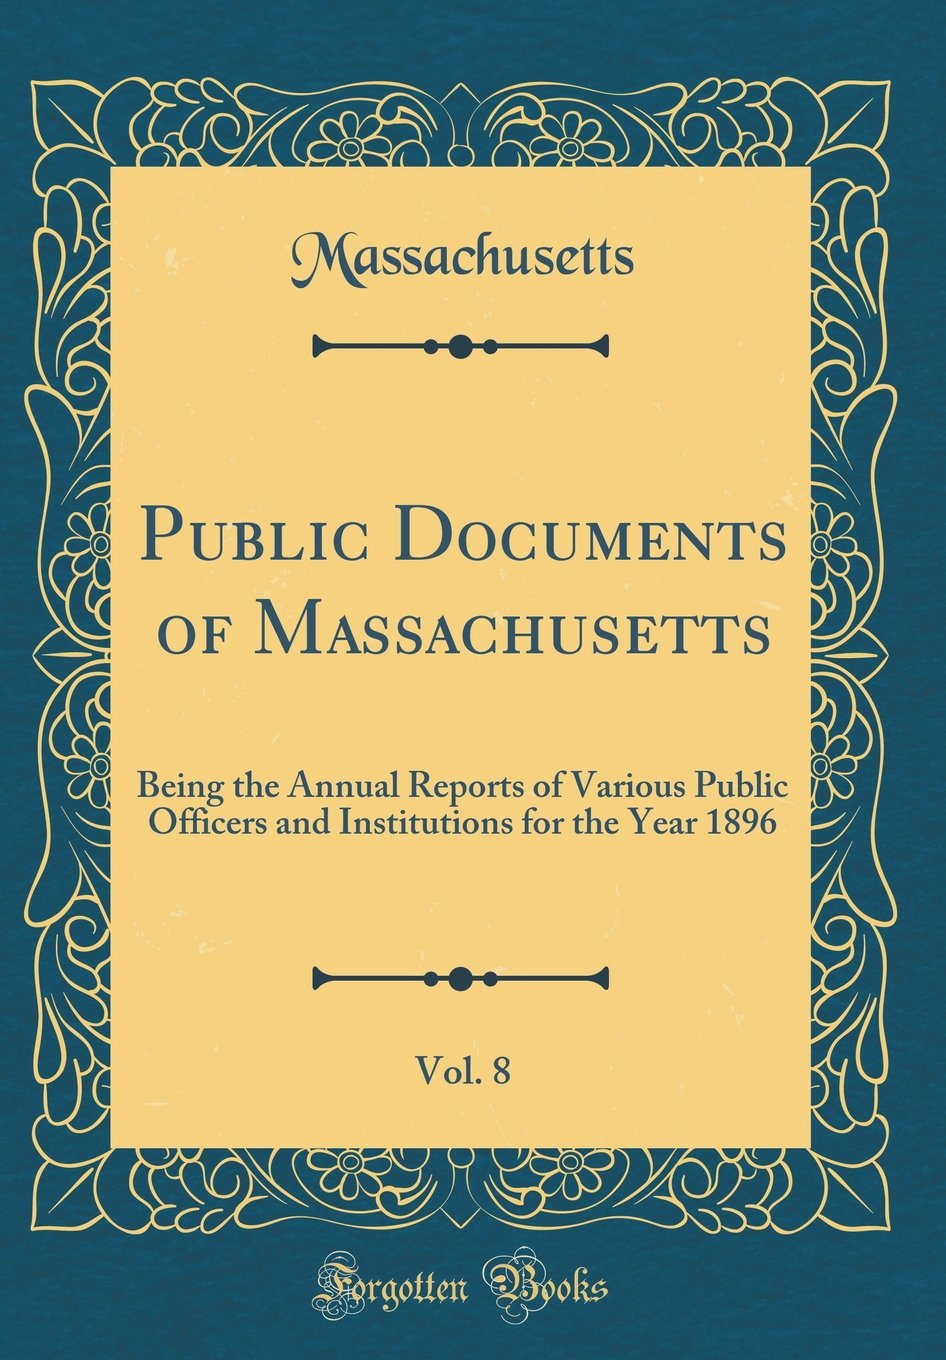 Public Documents of Massachusetts, Vol. 8: Being the Annual Reports of Various Public Officers and Institutions for the Year 1896 (Classic Reprint) pdf epub